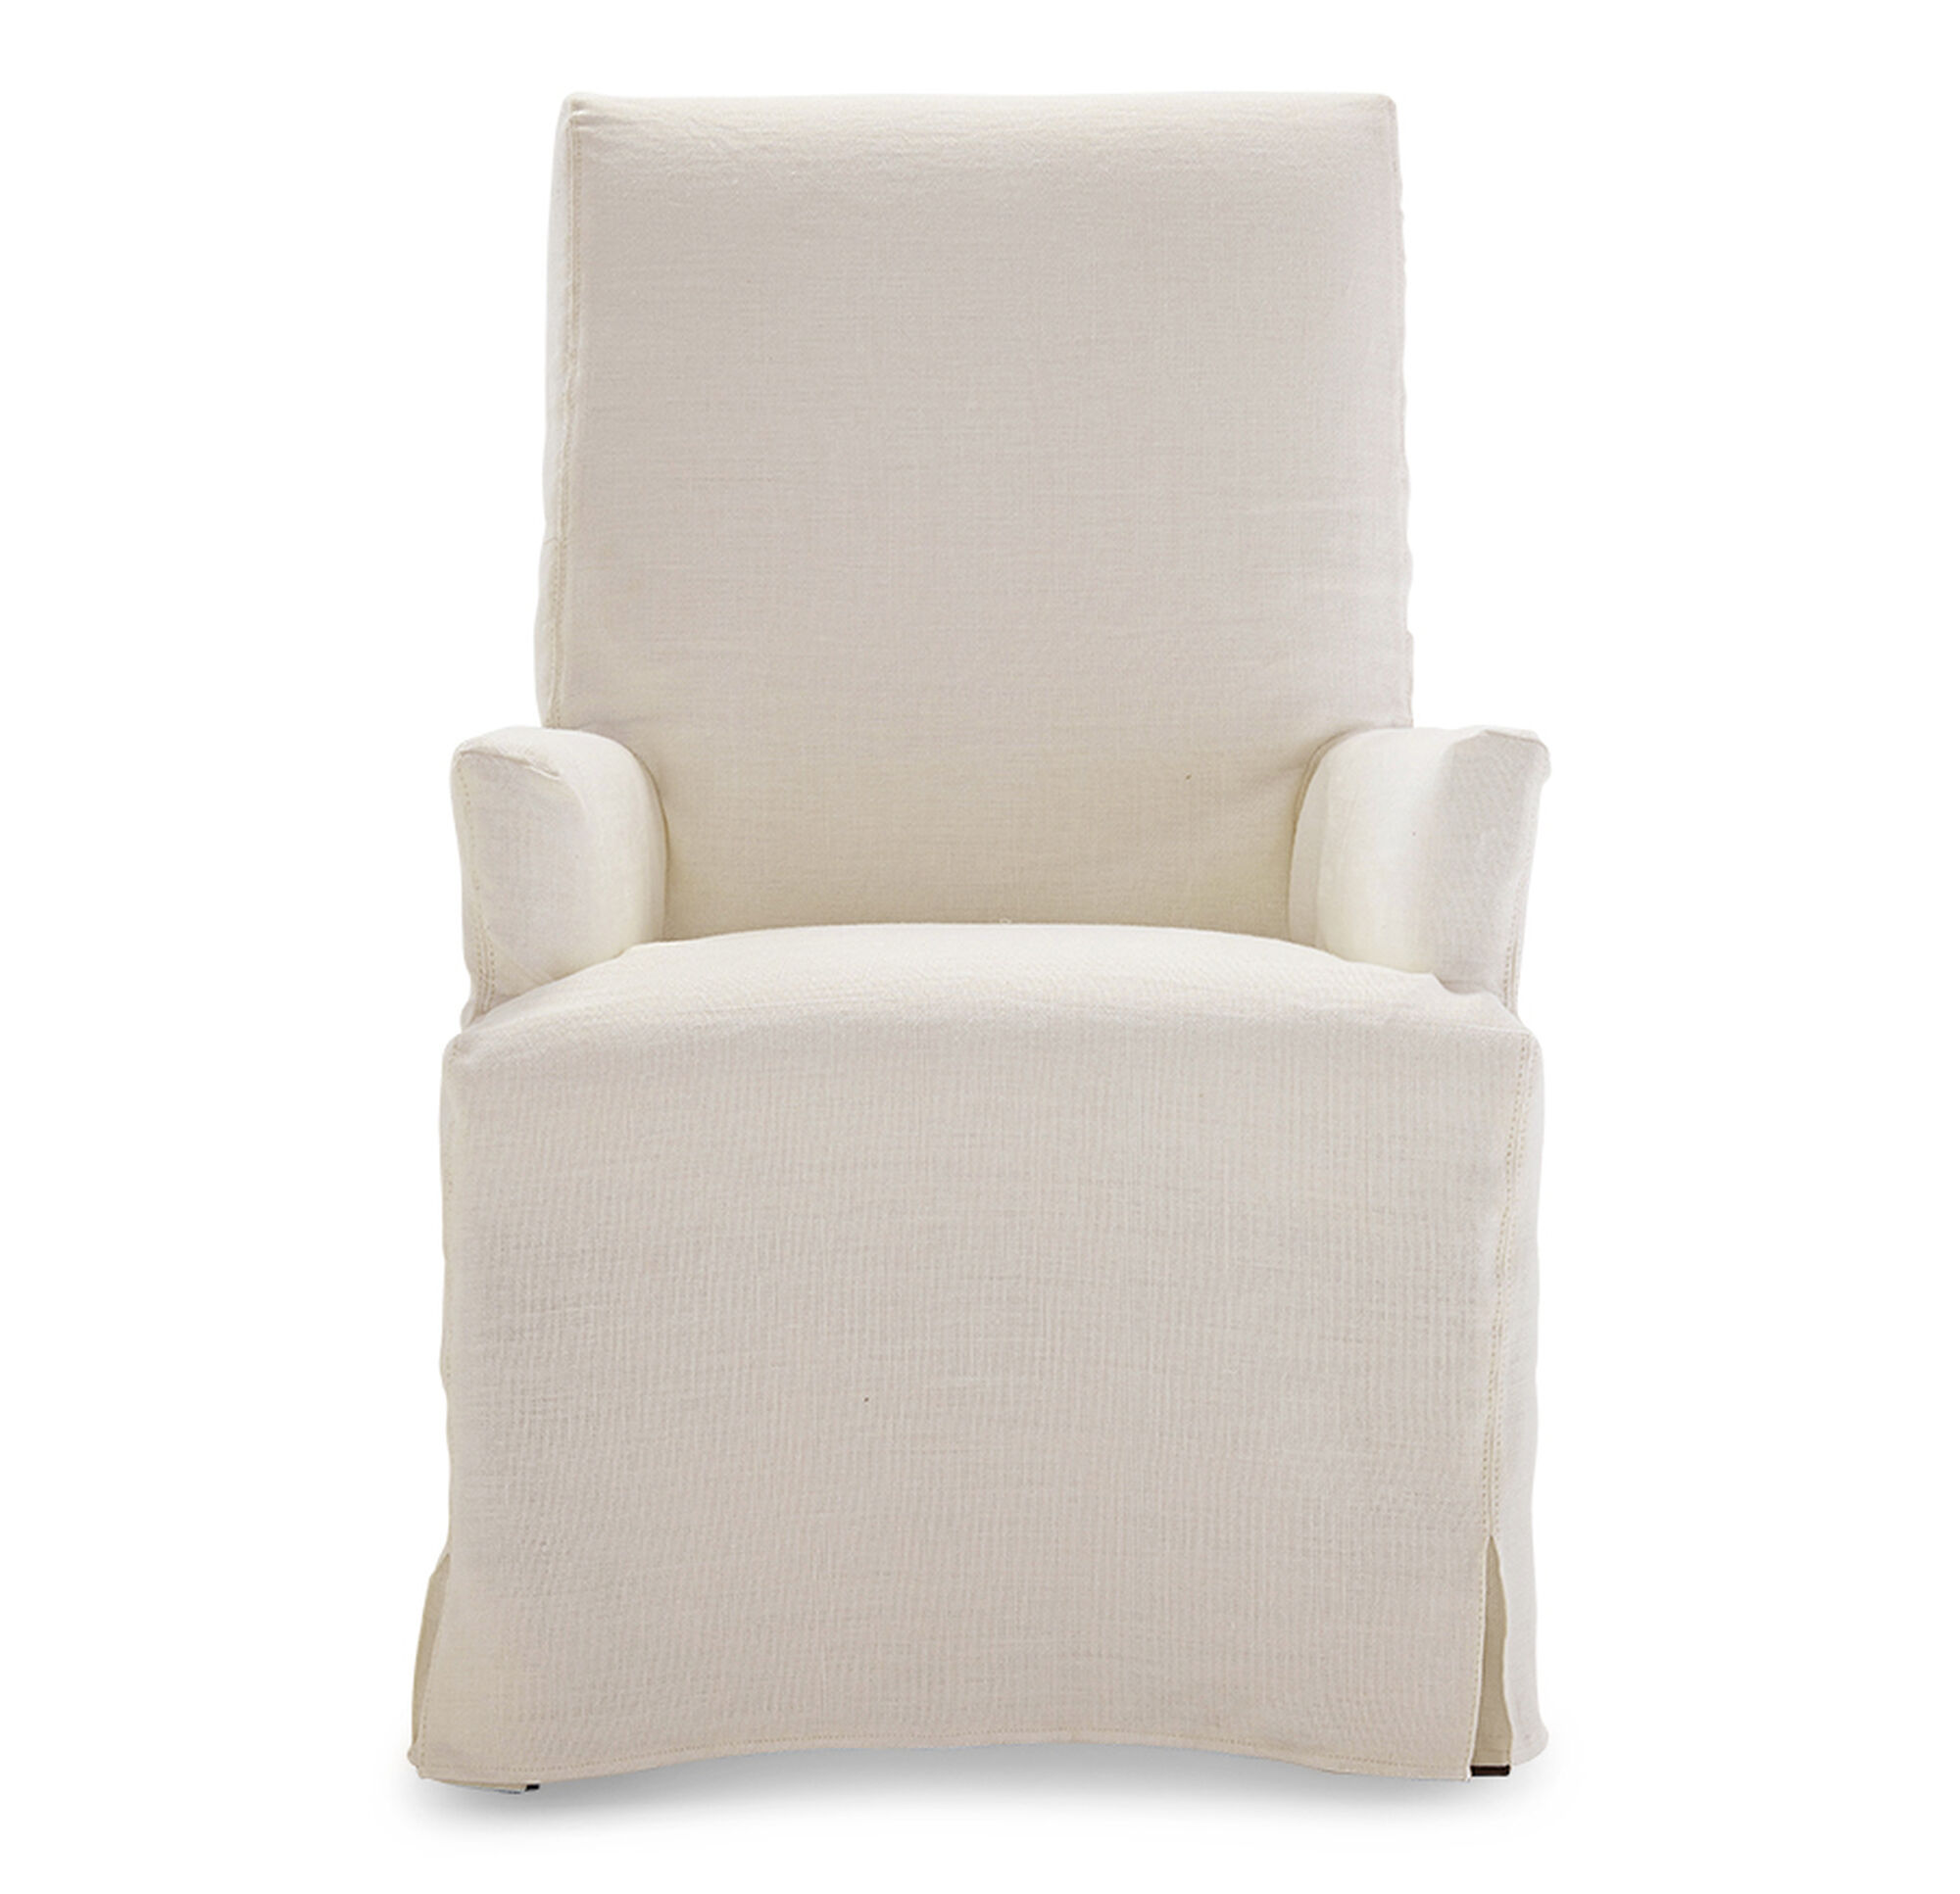 tips with room linen beauties height arms covers chairs dining slipcover for fabric chair seat slipcovers bar